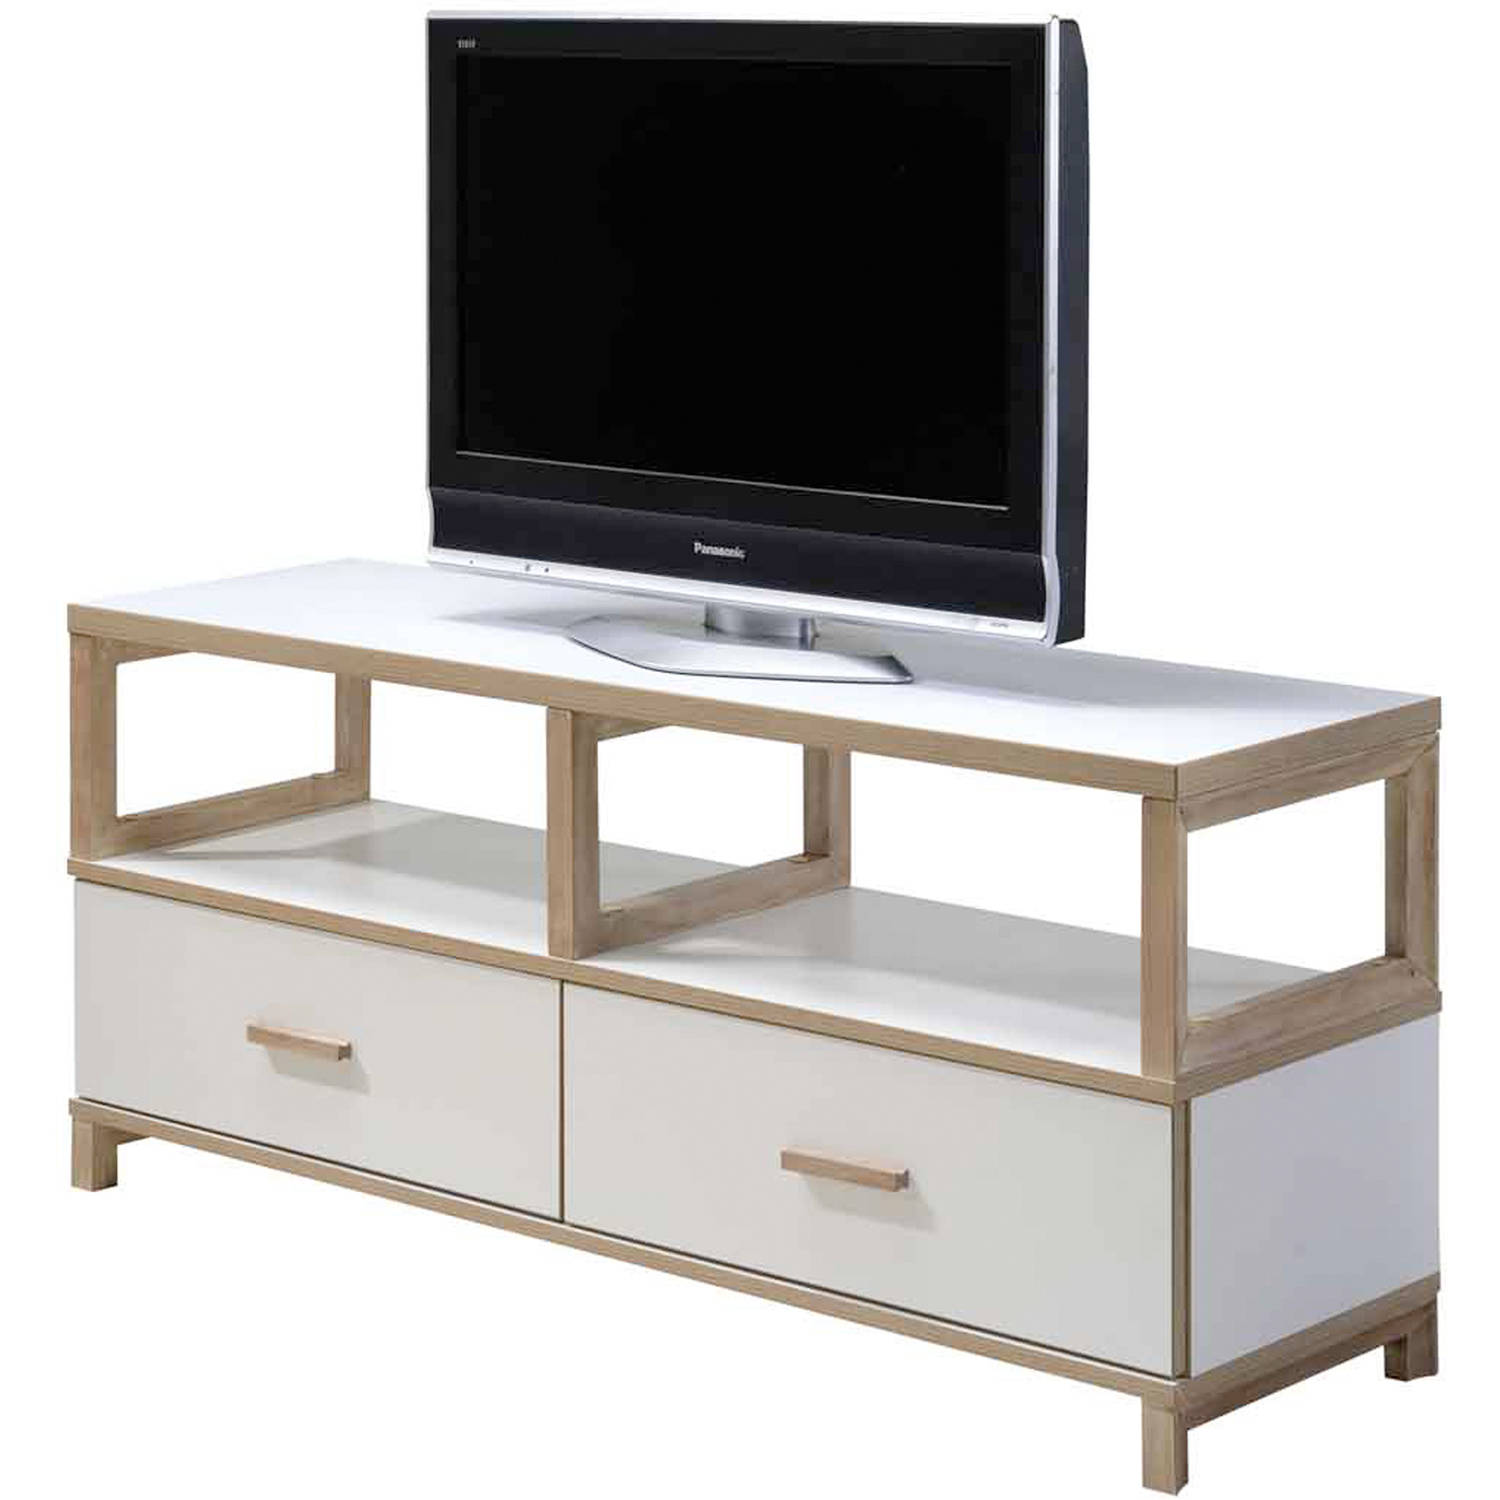 Imagio Home's Lifestyles Studio Living Collection Wood Entertainment Unit, White